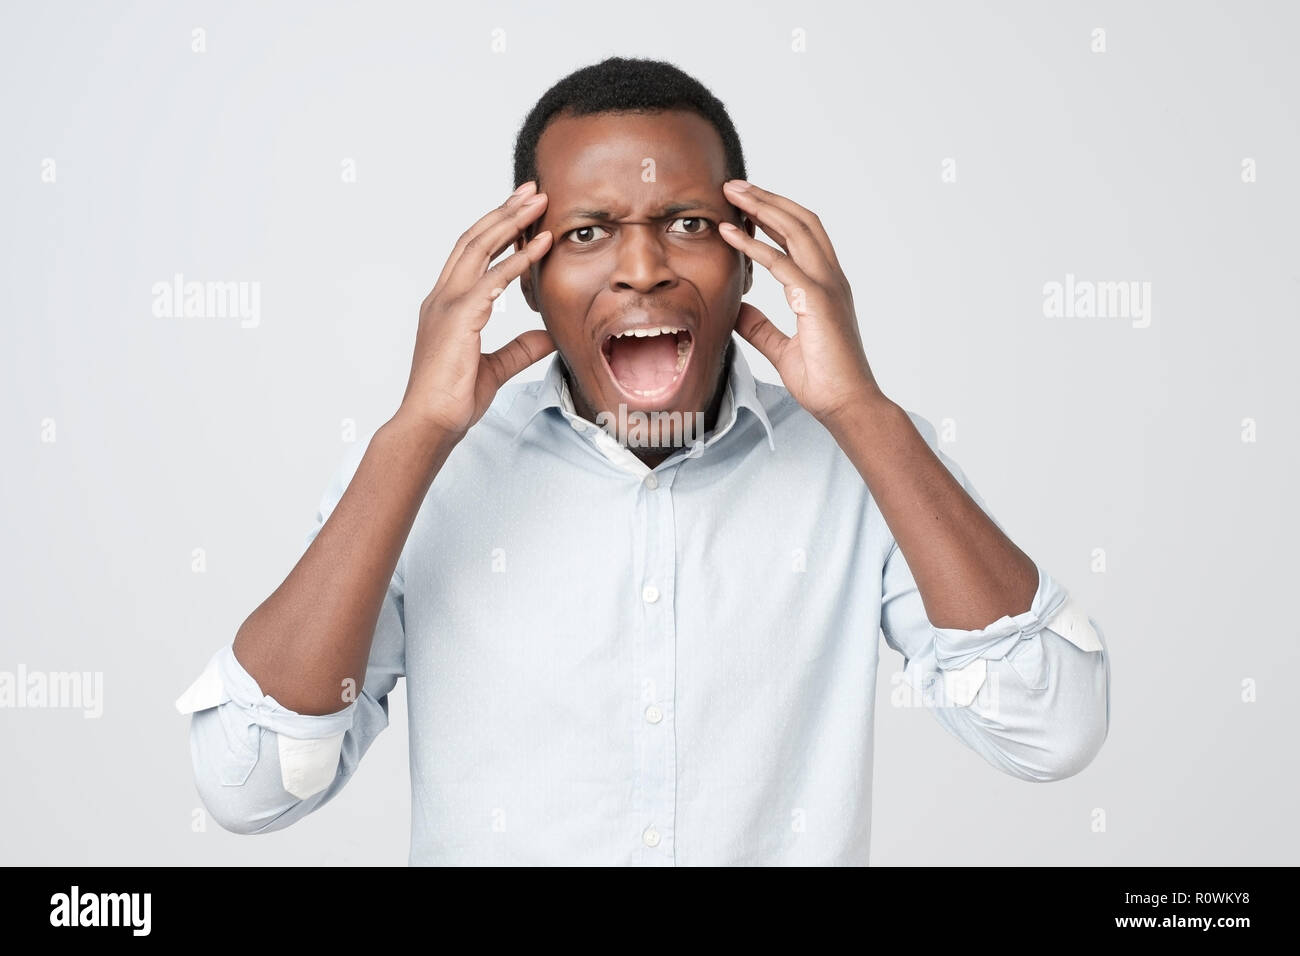 Annoyed african american man in blue shirt screaming in panic, shocked to hear bad news. Stressful situation concept. - Stock Image